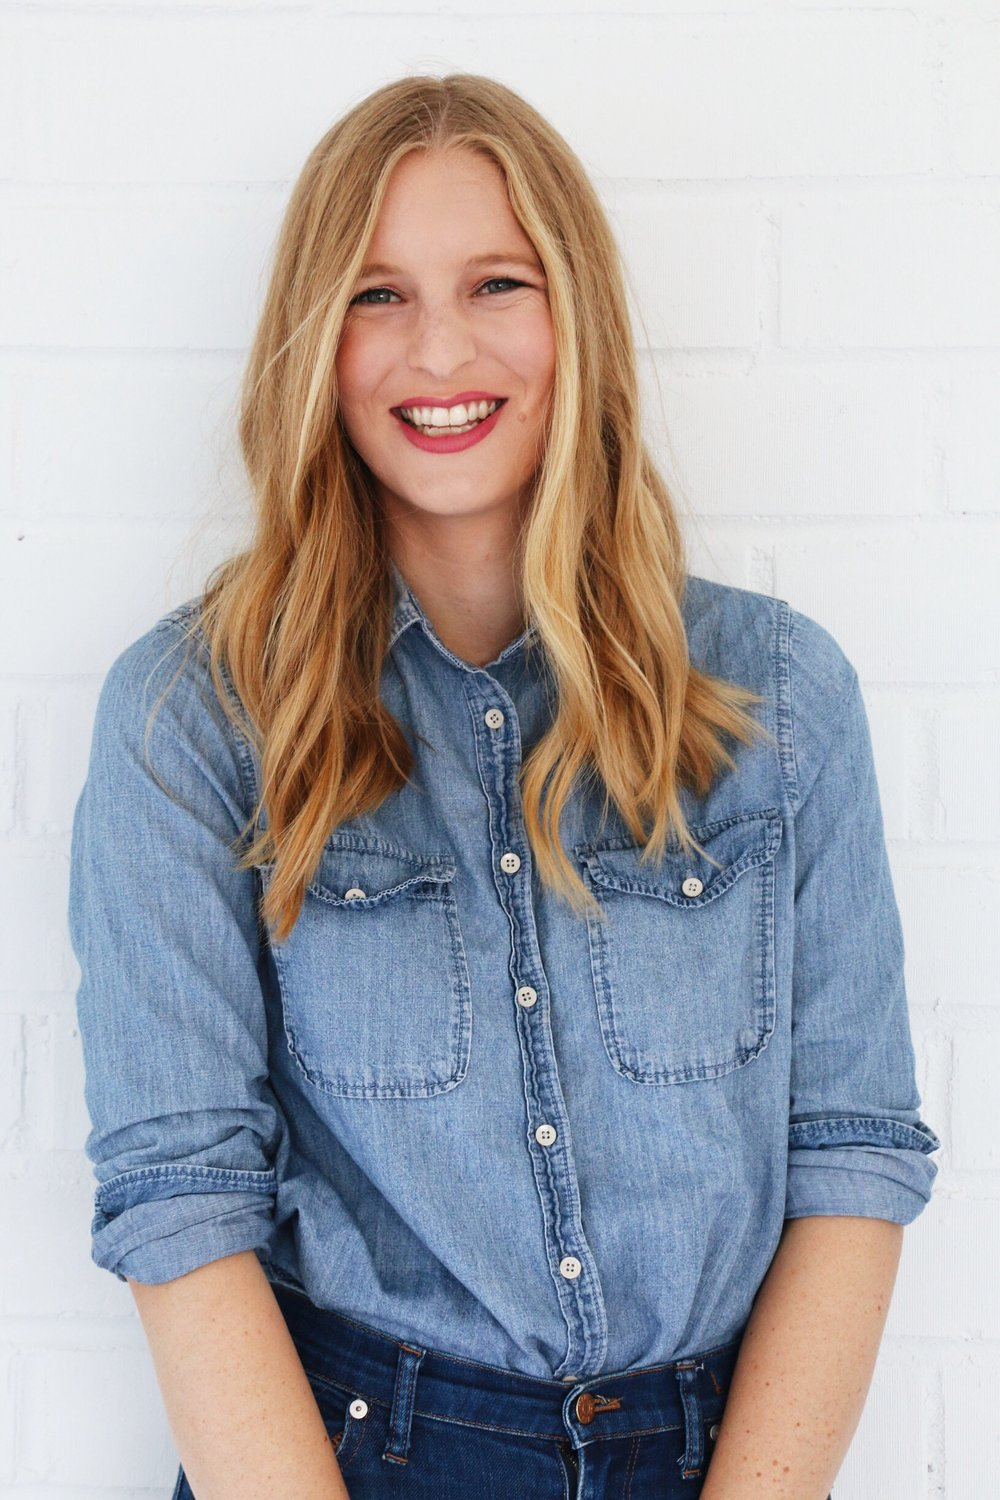 <h3>Lindsey Cook</h3>Editorial Assistant